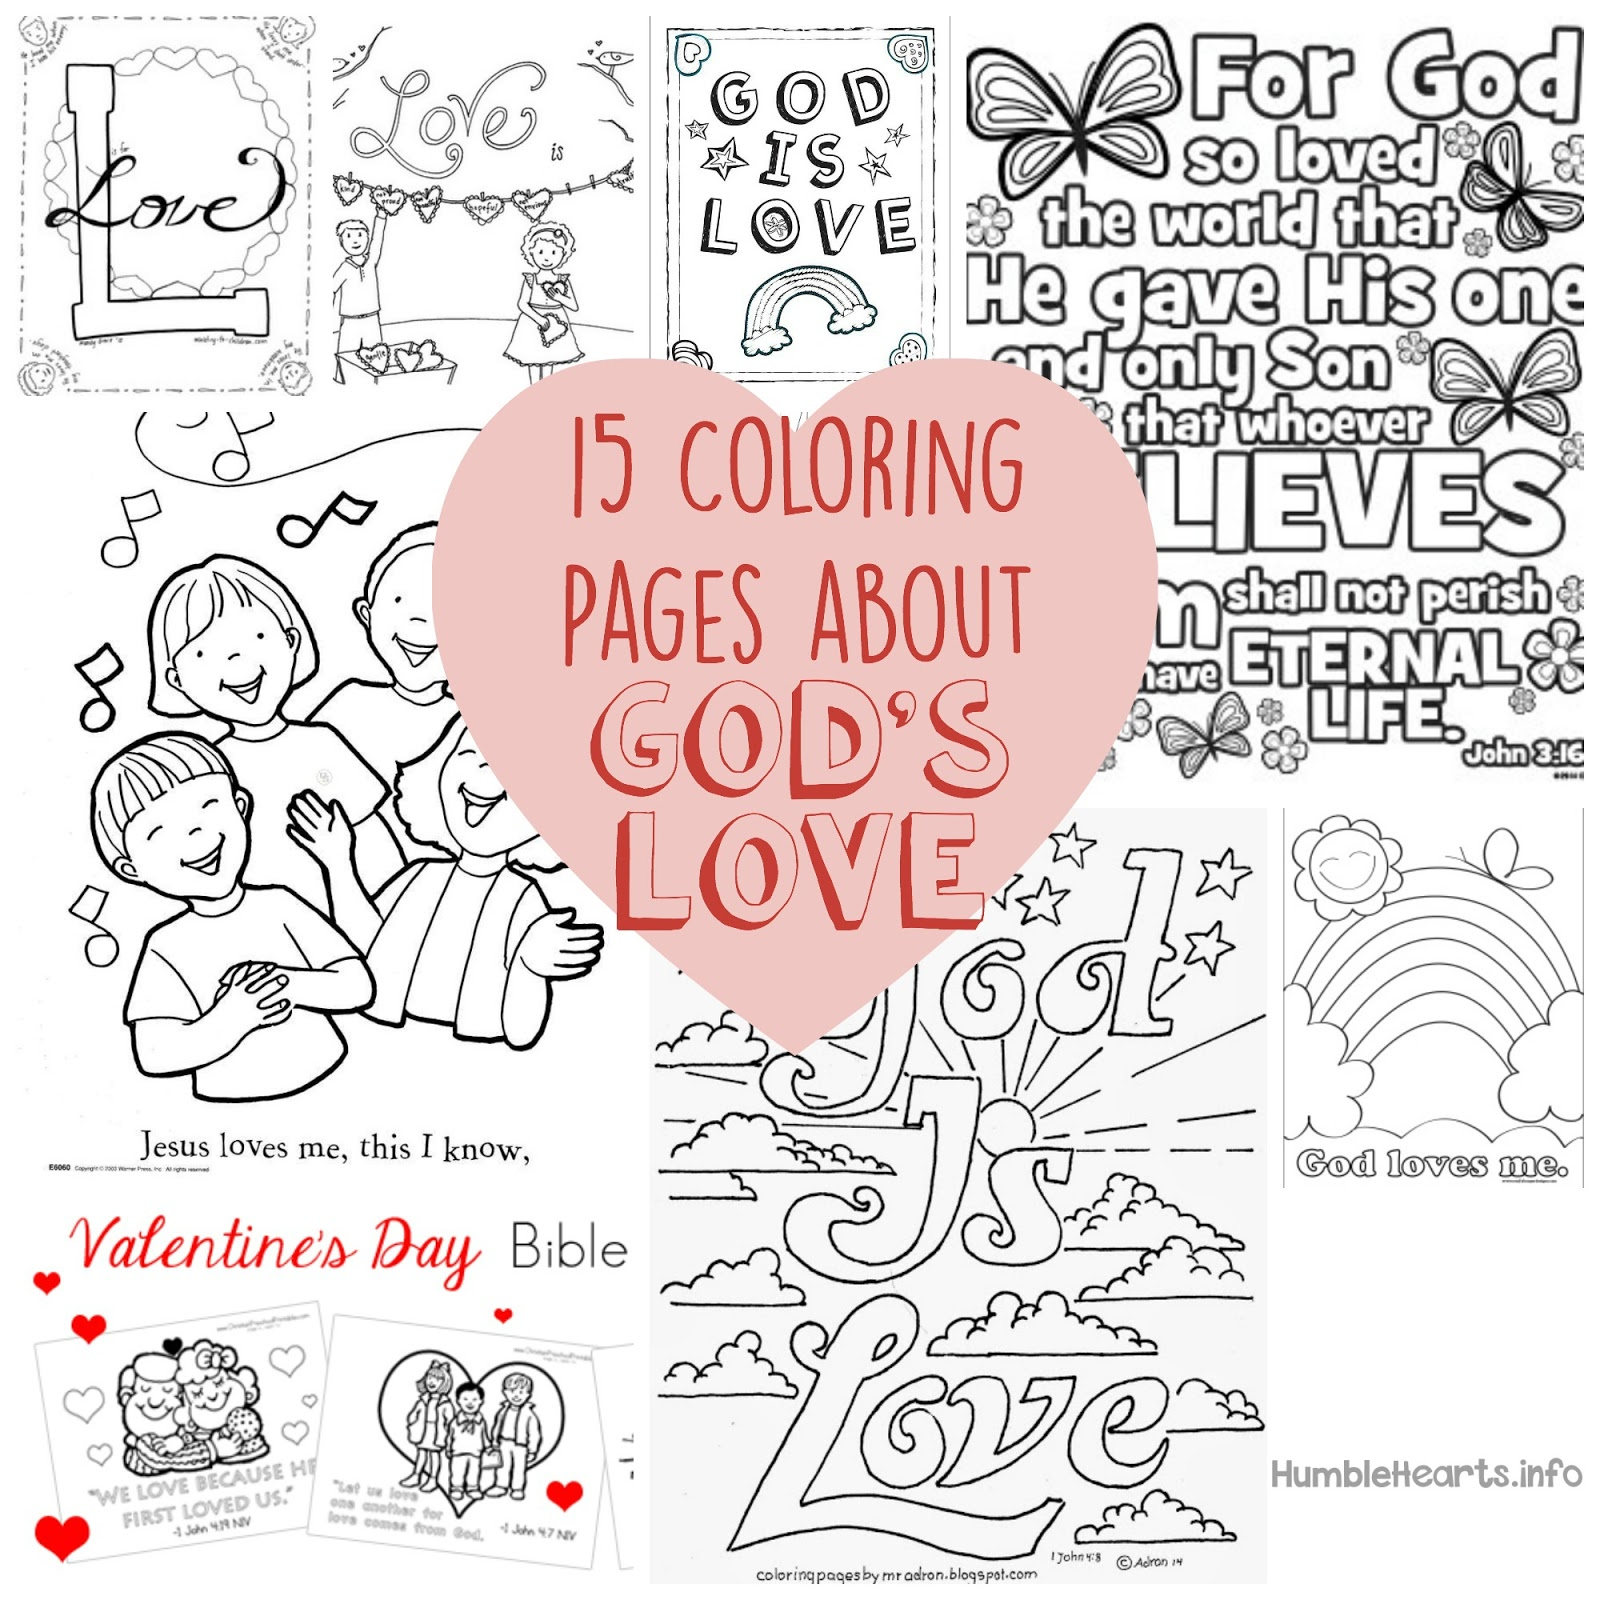 15 Coloring Pages About God\'s Love - Short and Sweet | Humble Hearts